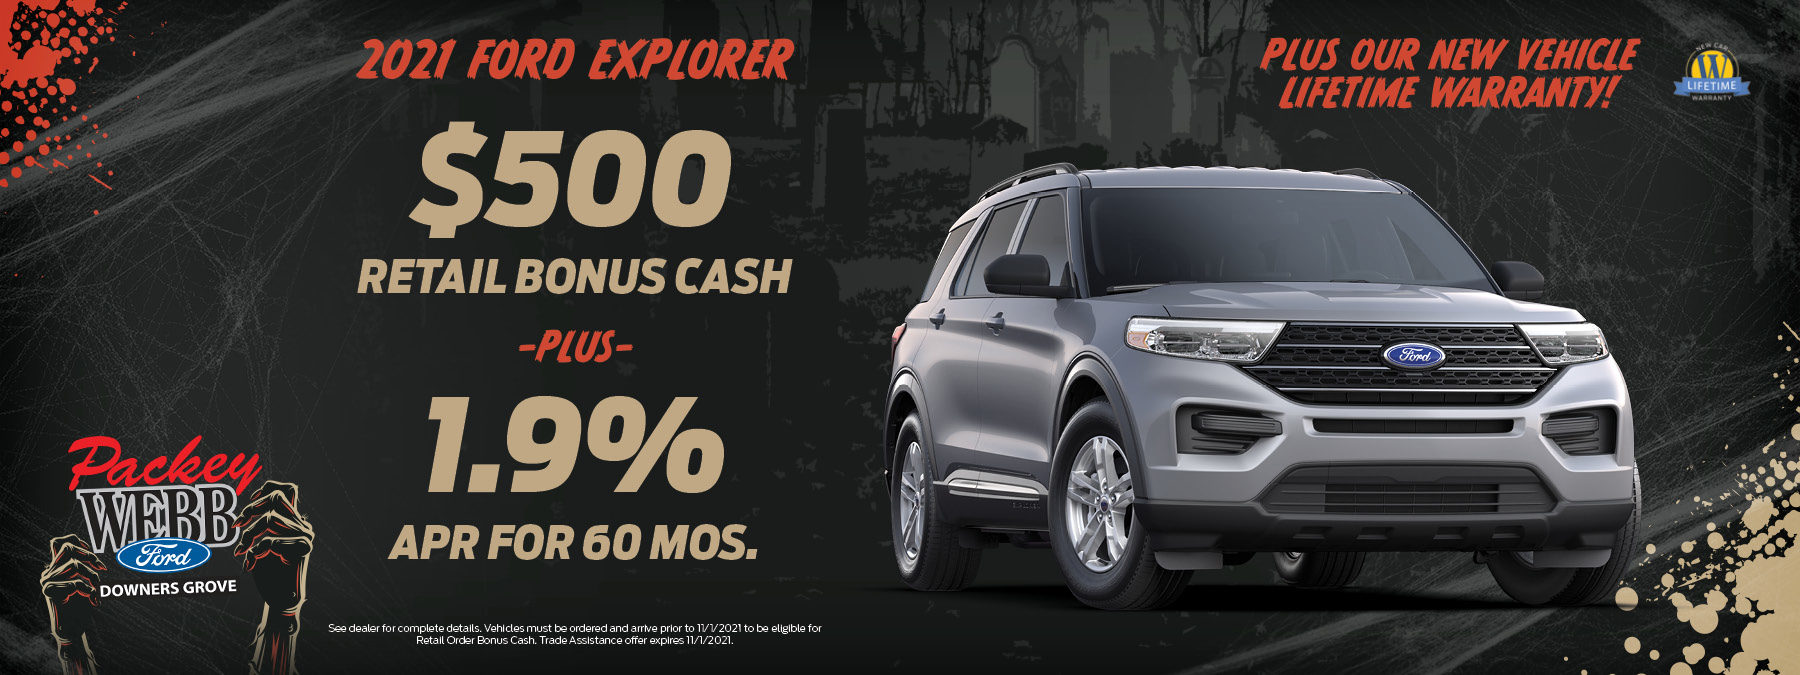 2021 Ford Explorer   Packey Webb Ford   Downers Grove, IL